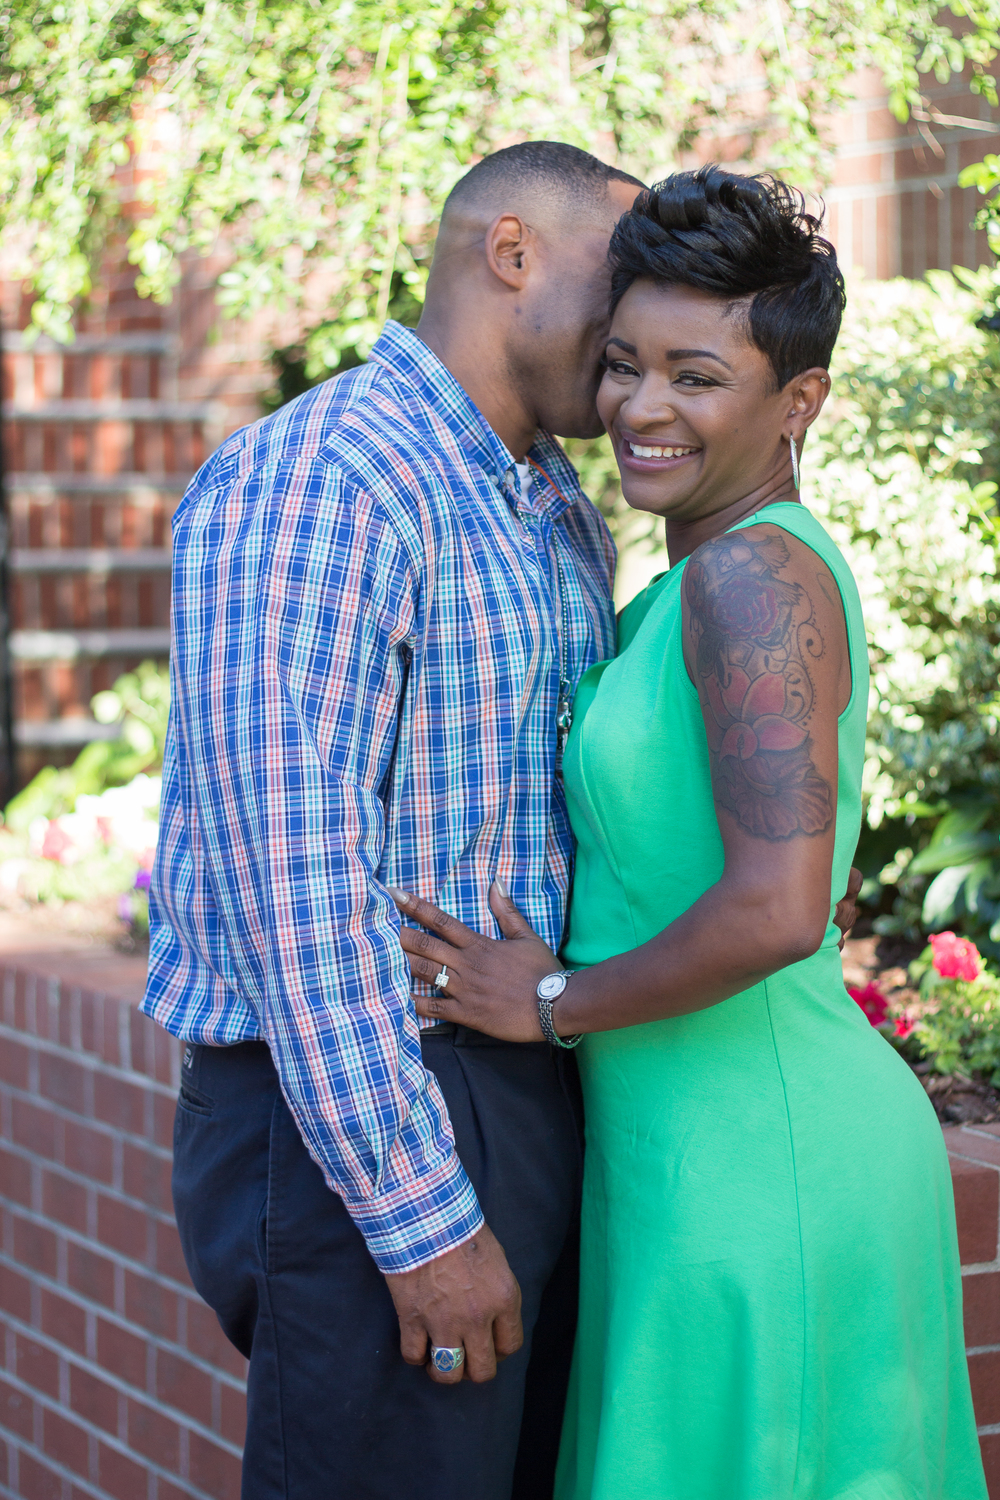 downtown_norfolk_va_freemason_district_engagement_session